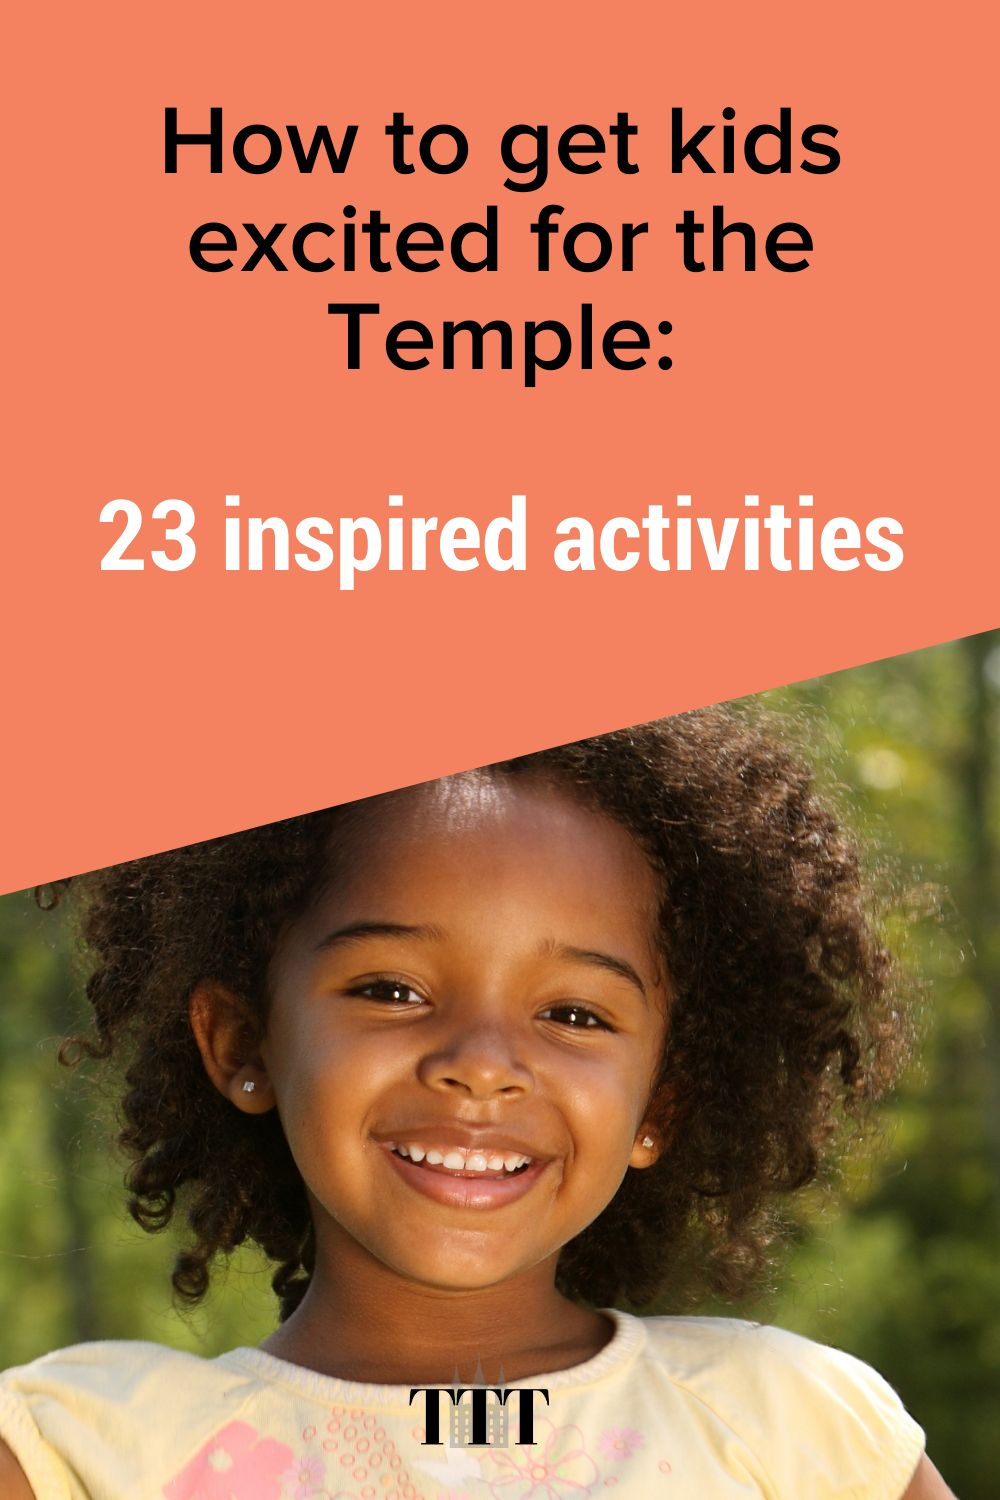 How to get kids excited for the Temple: 23 inspired activities